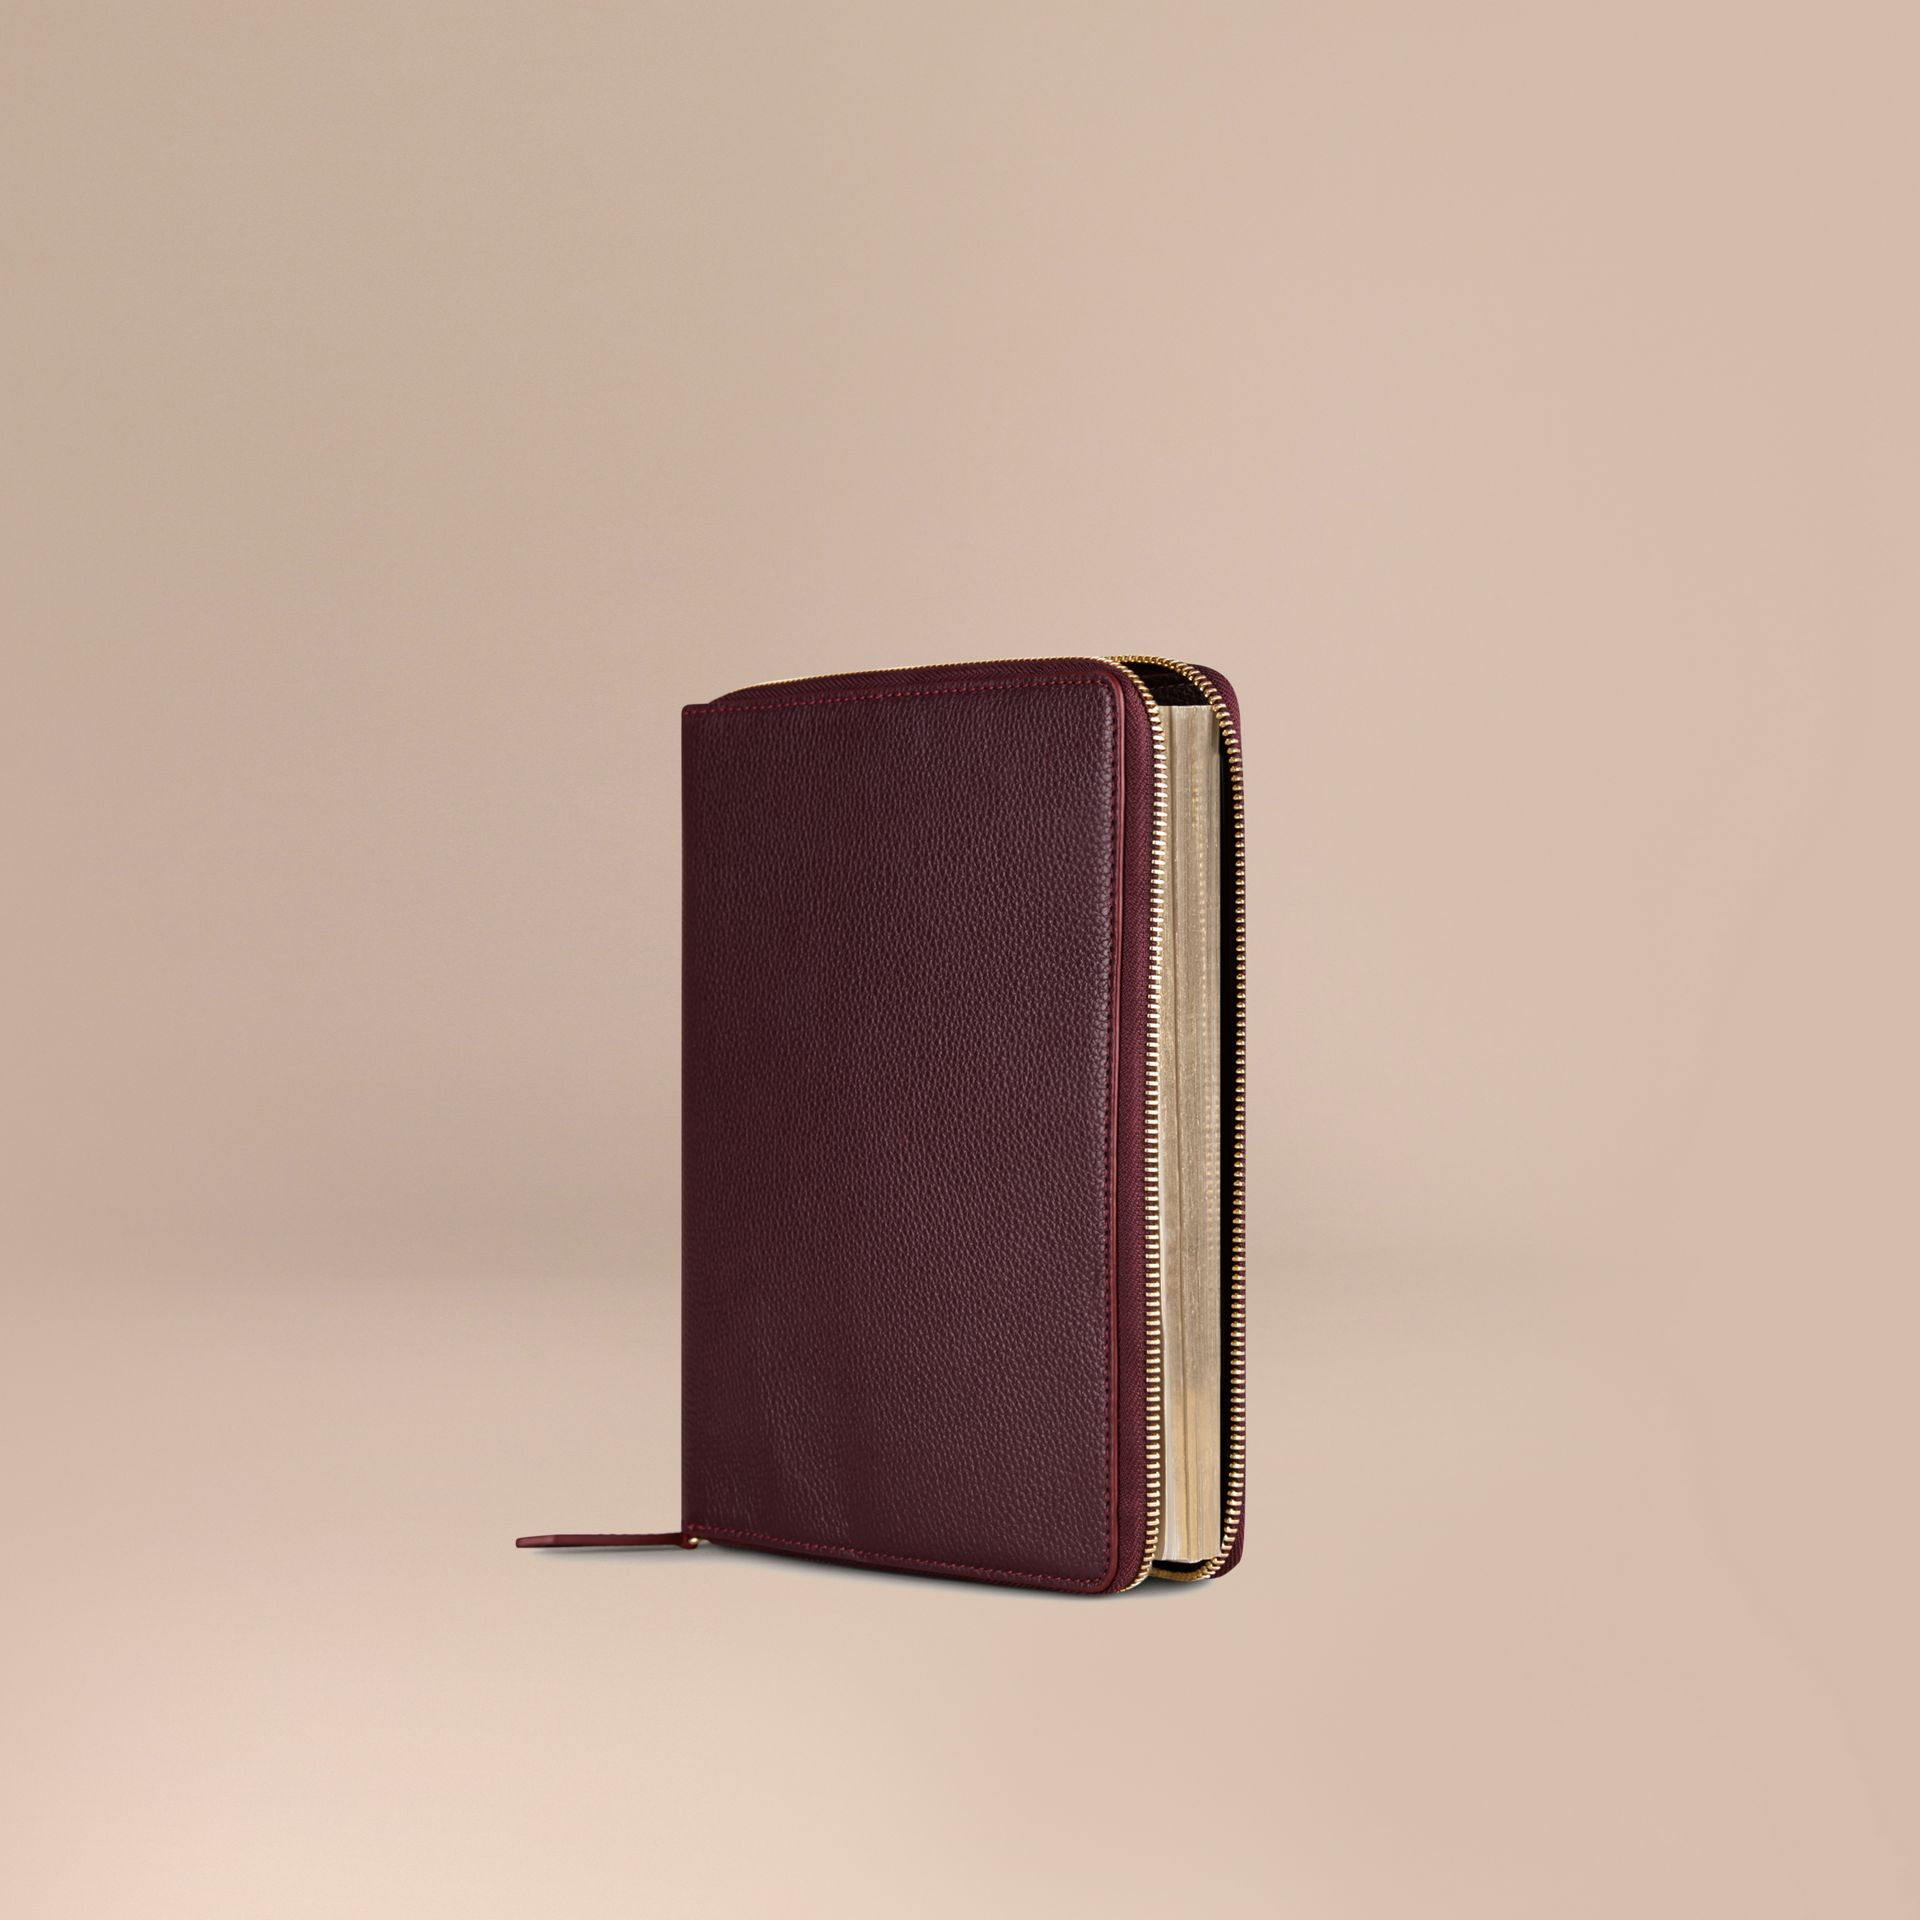 Ziparound Grainy Leather 18 Month 2016/17 A5 Diary in Dark Amethyst | Burberry - gallery image 1